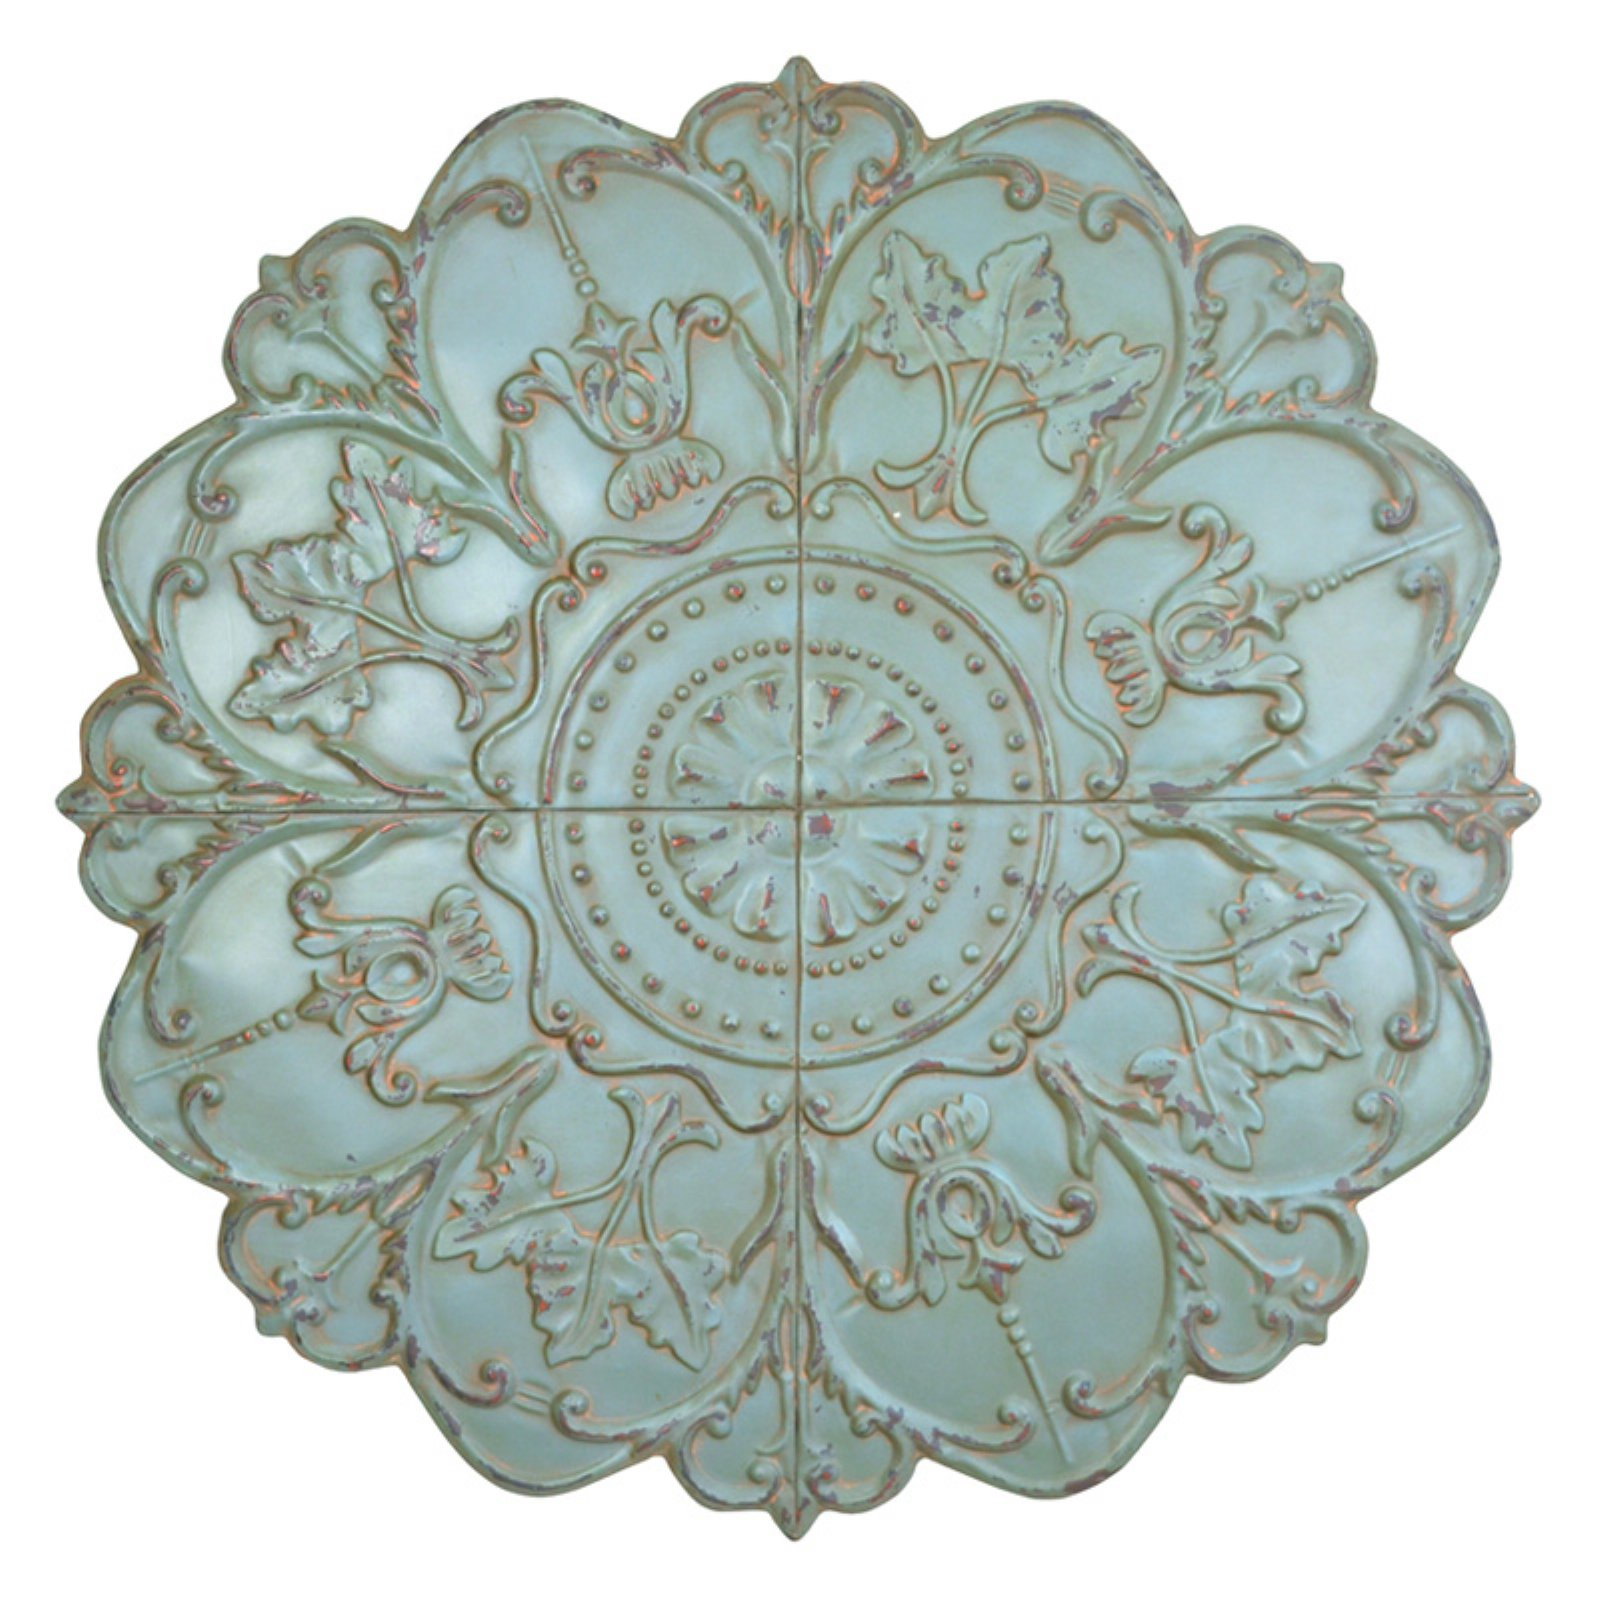 Stratton Home Decor Shabby Medallion Wall Decor by Stratton Home Decor